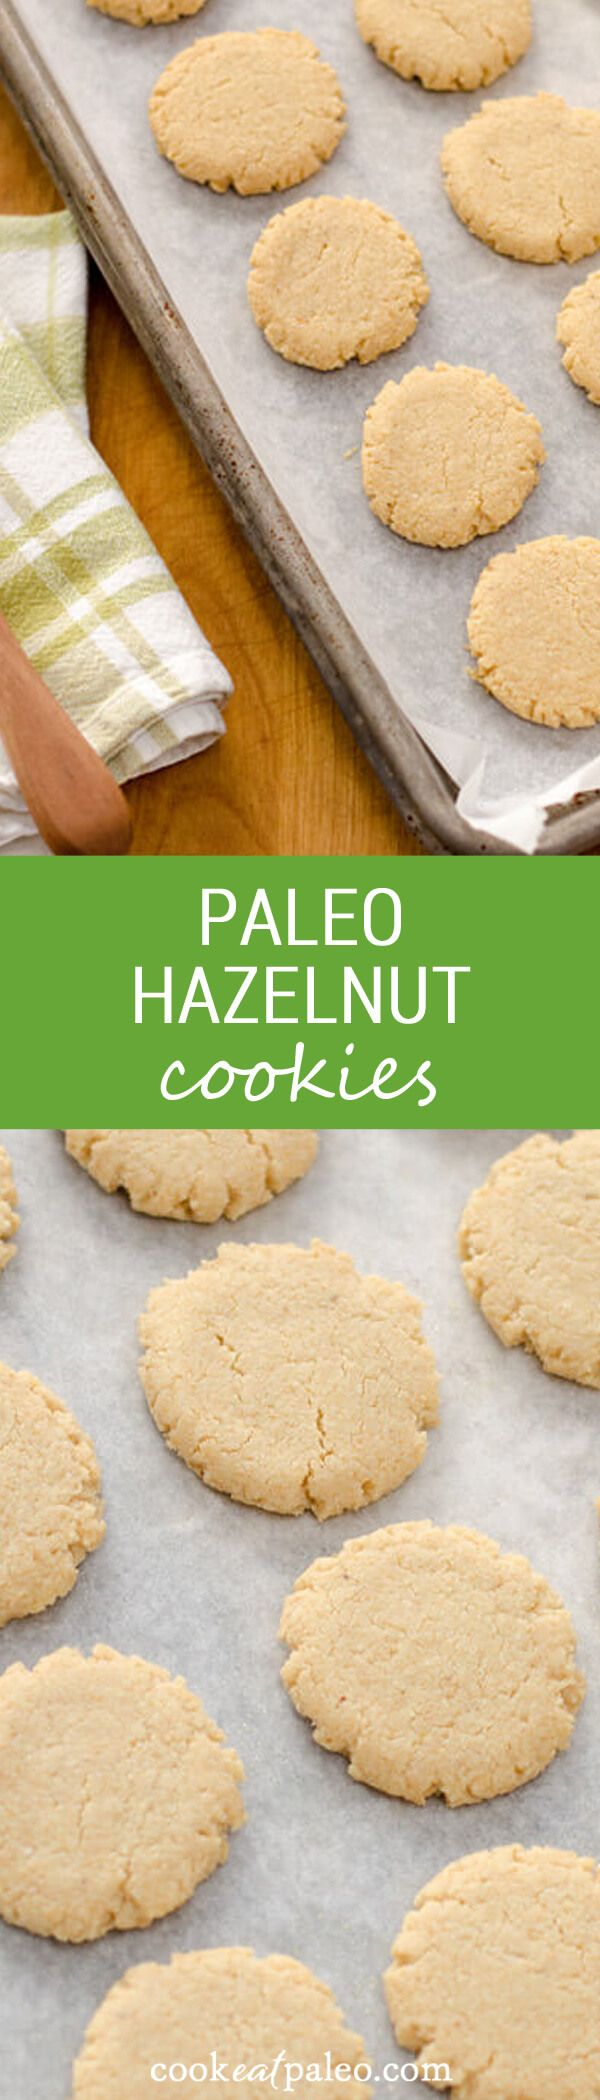 These quick and easy paleo hazelnut cookies are gluten-free, grain-free, and egg-free. They are nutty, chewy and not too sweet — perfect with a cup of hot chocolate. ~ http://cookeatpaleo.com